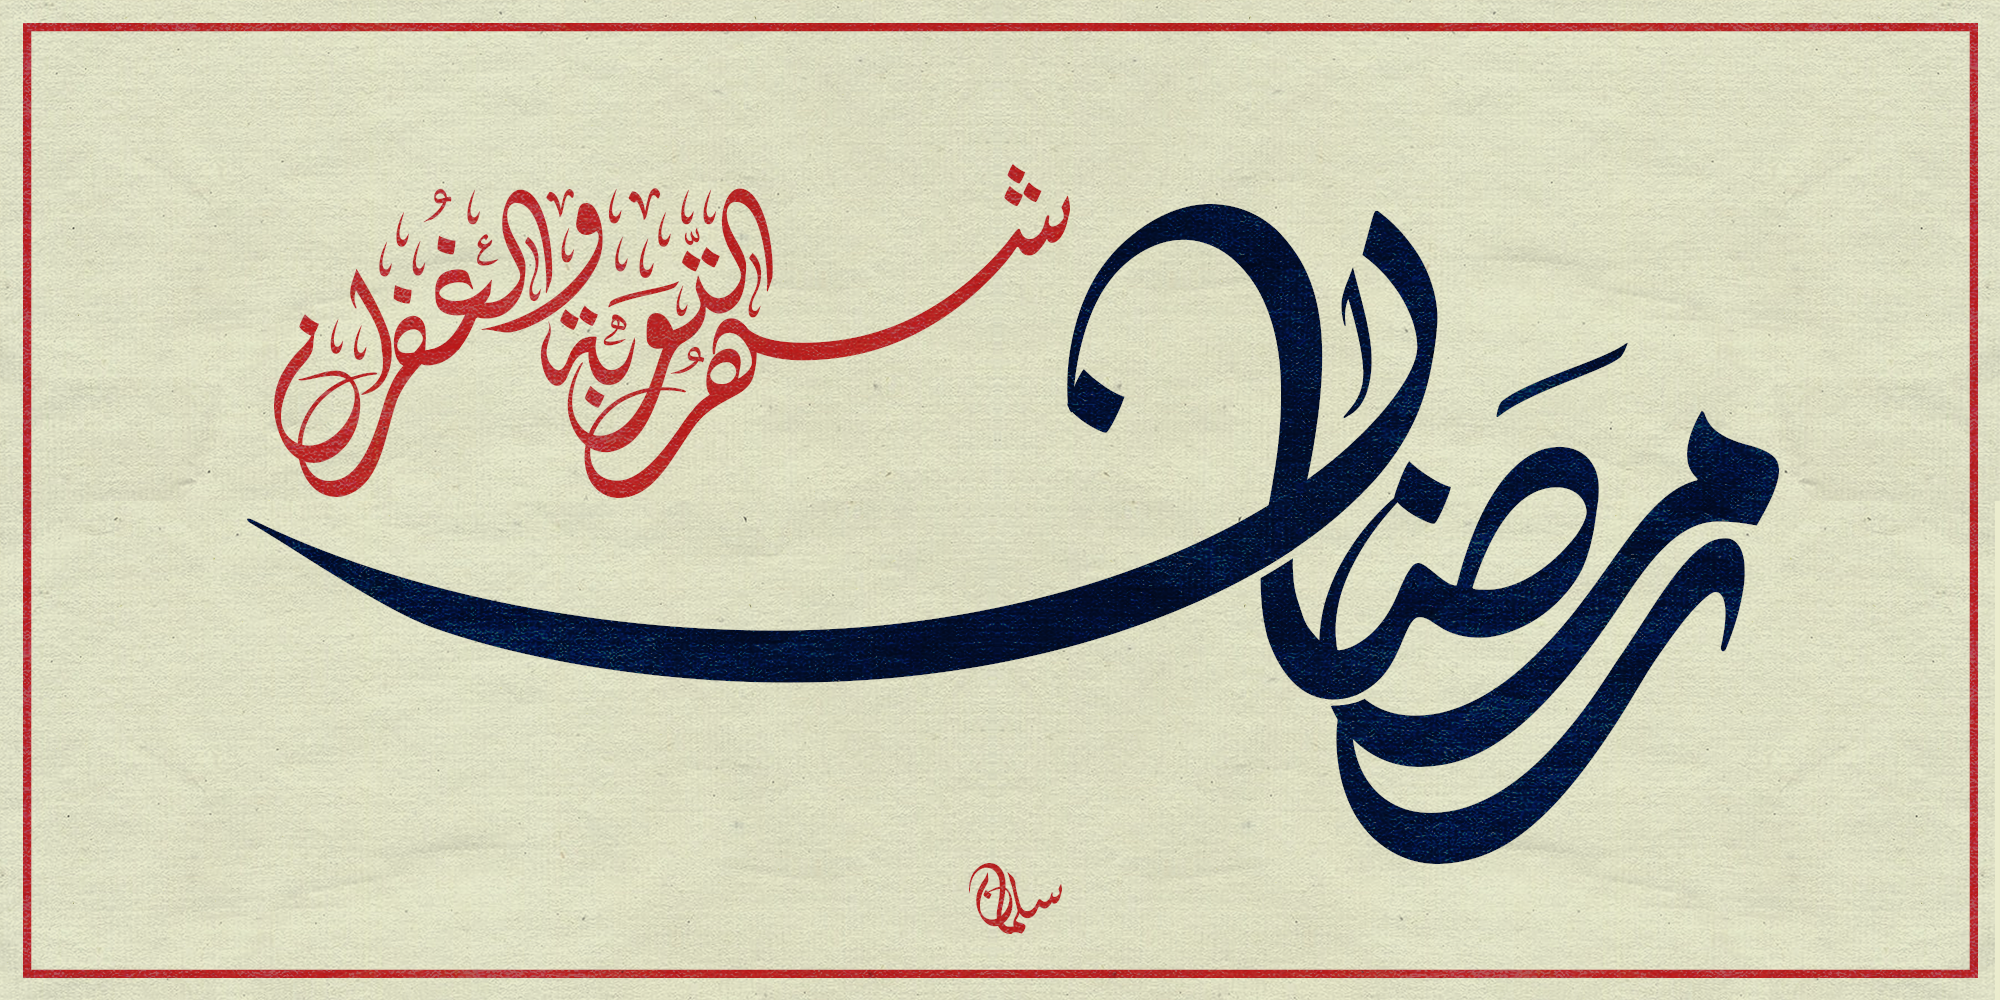 Ramadan calligraphy by selmane on deviantart